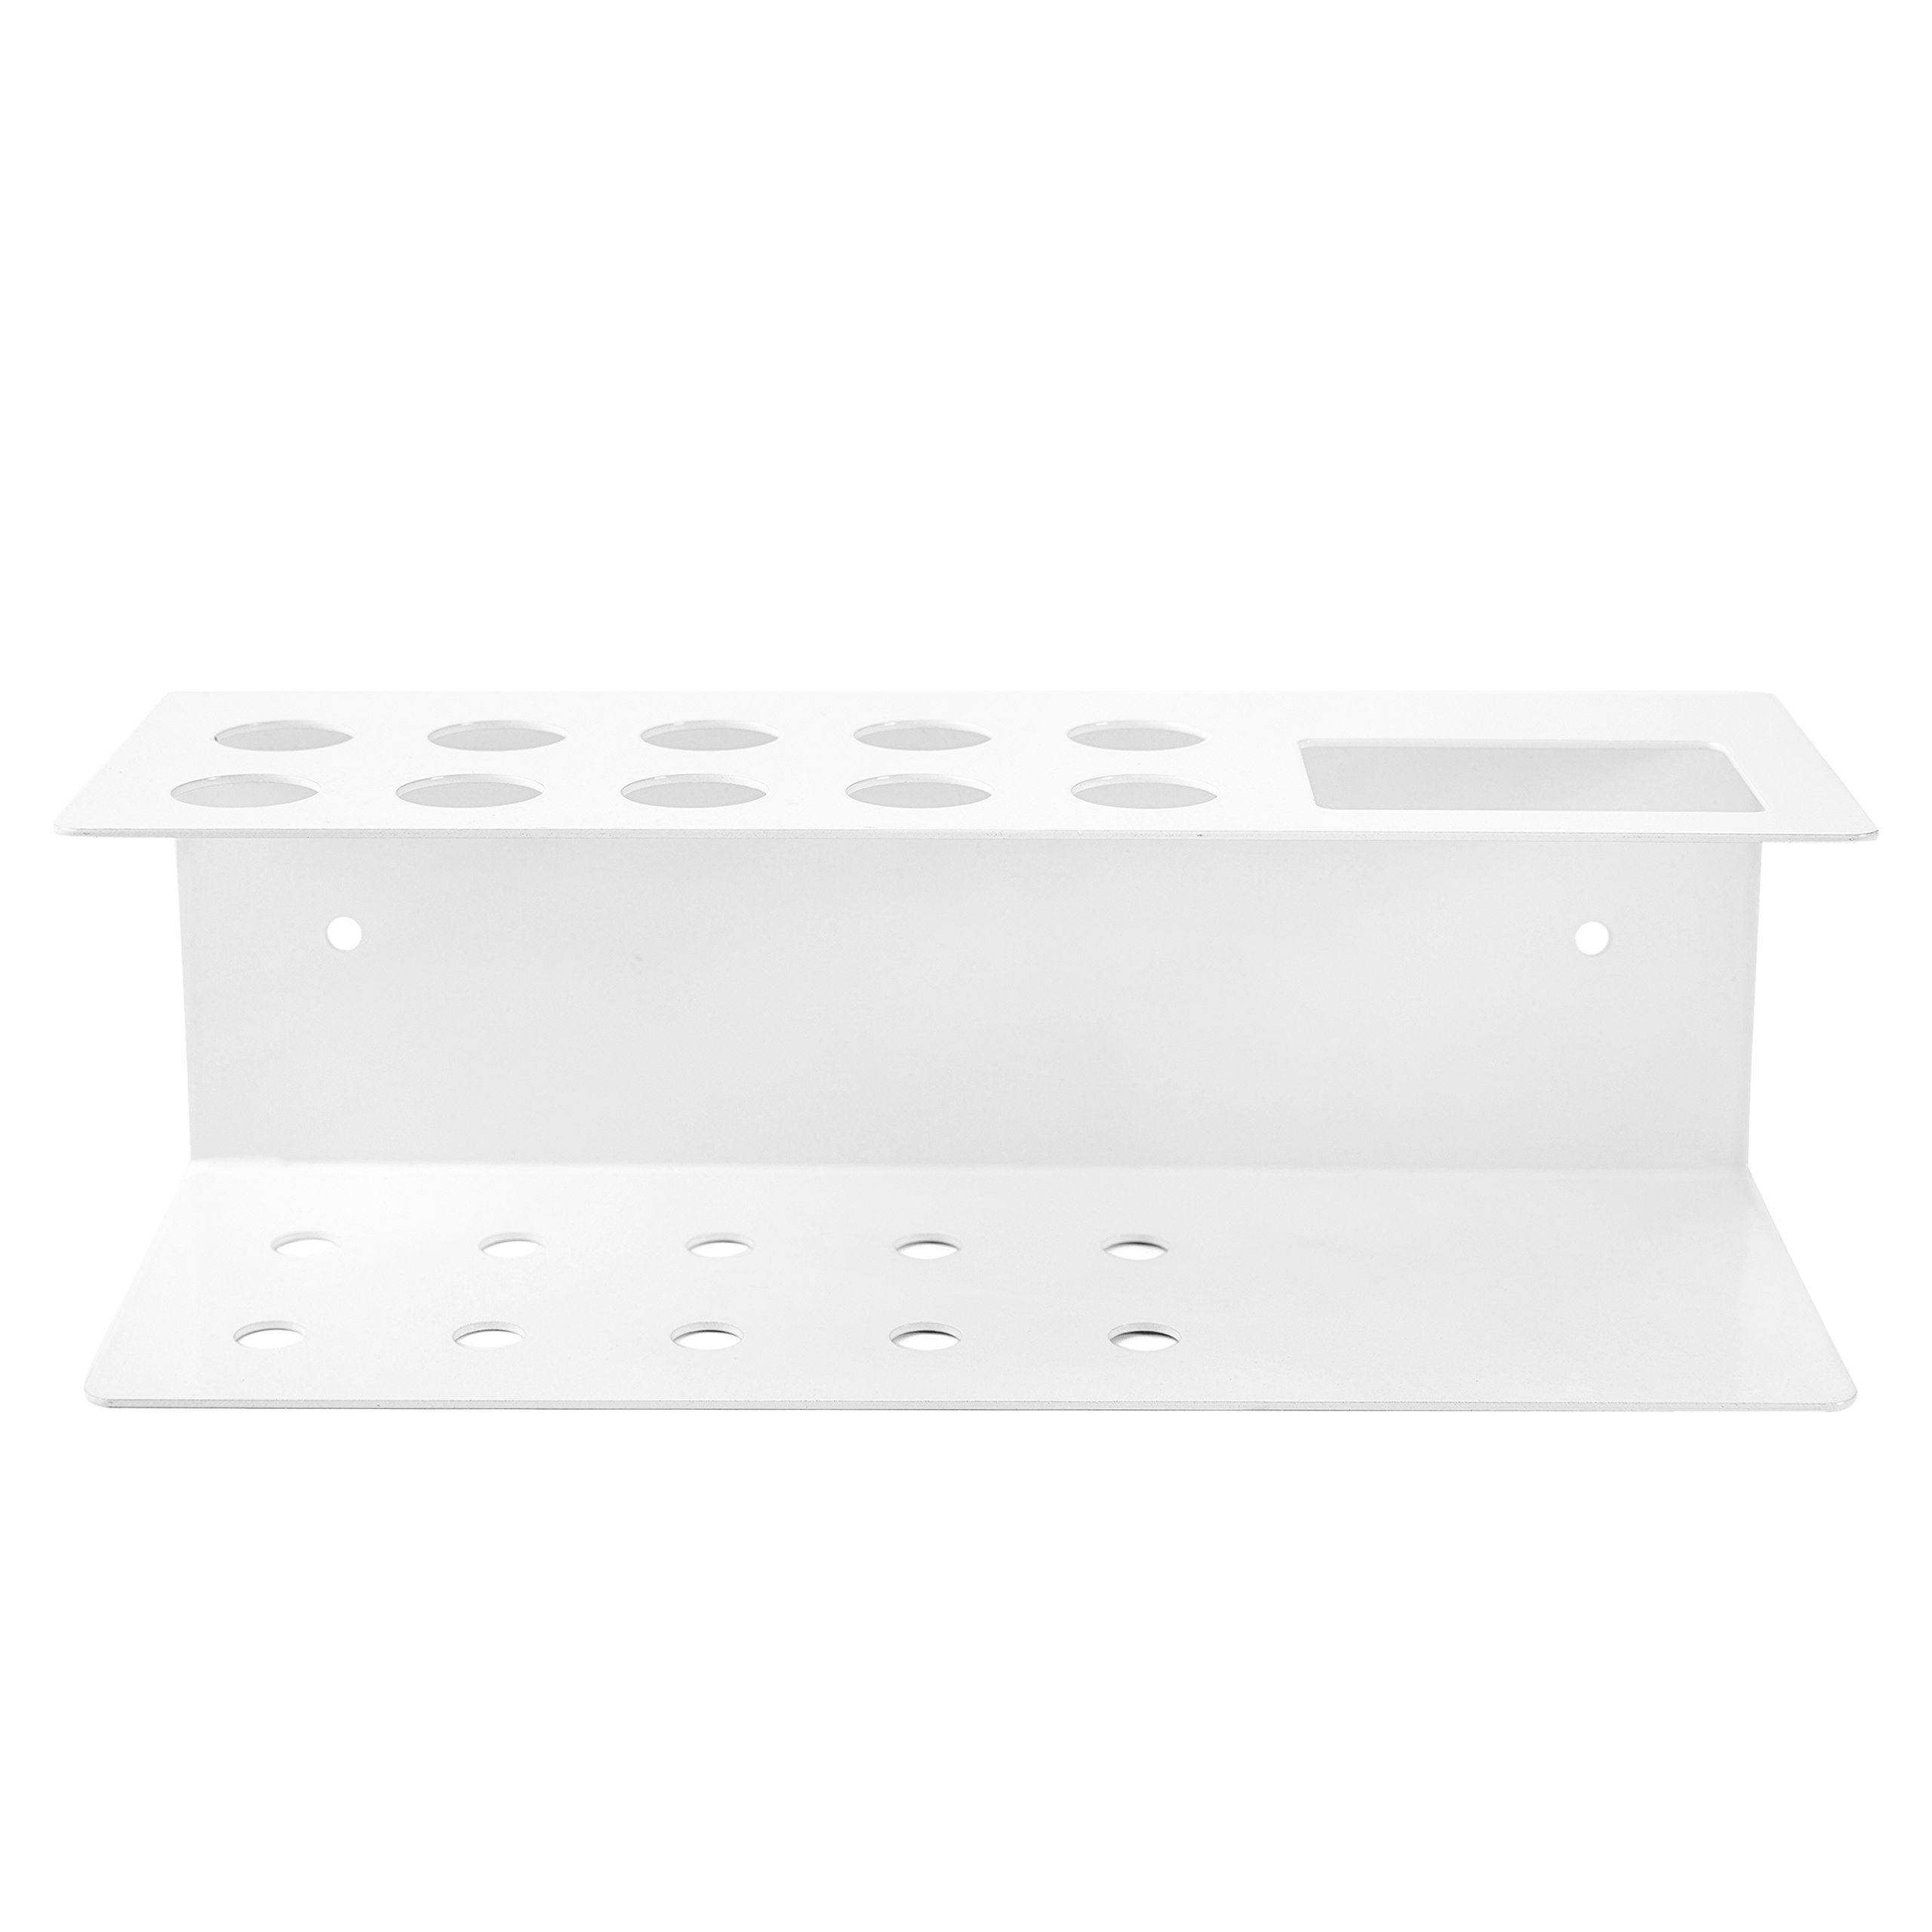 10-Slot Wall-Mounted Metal Dry Erase Marker and Eraser Holder Rack, White by MyGift (Image #4)